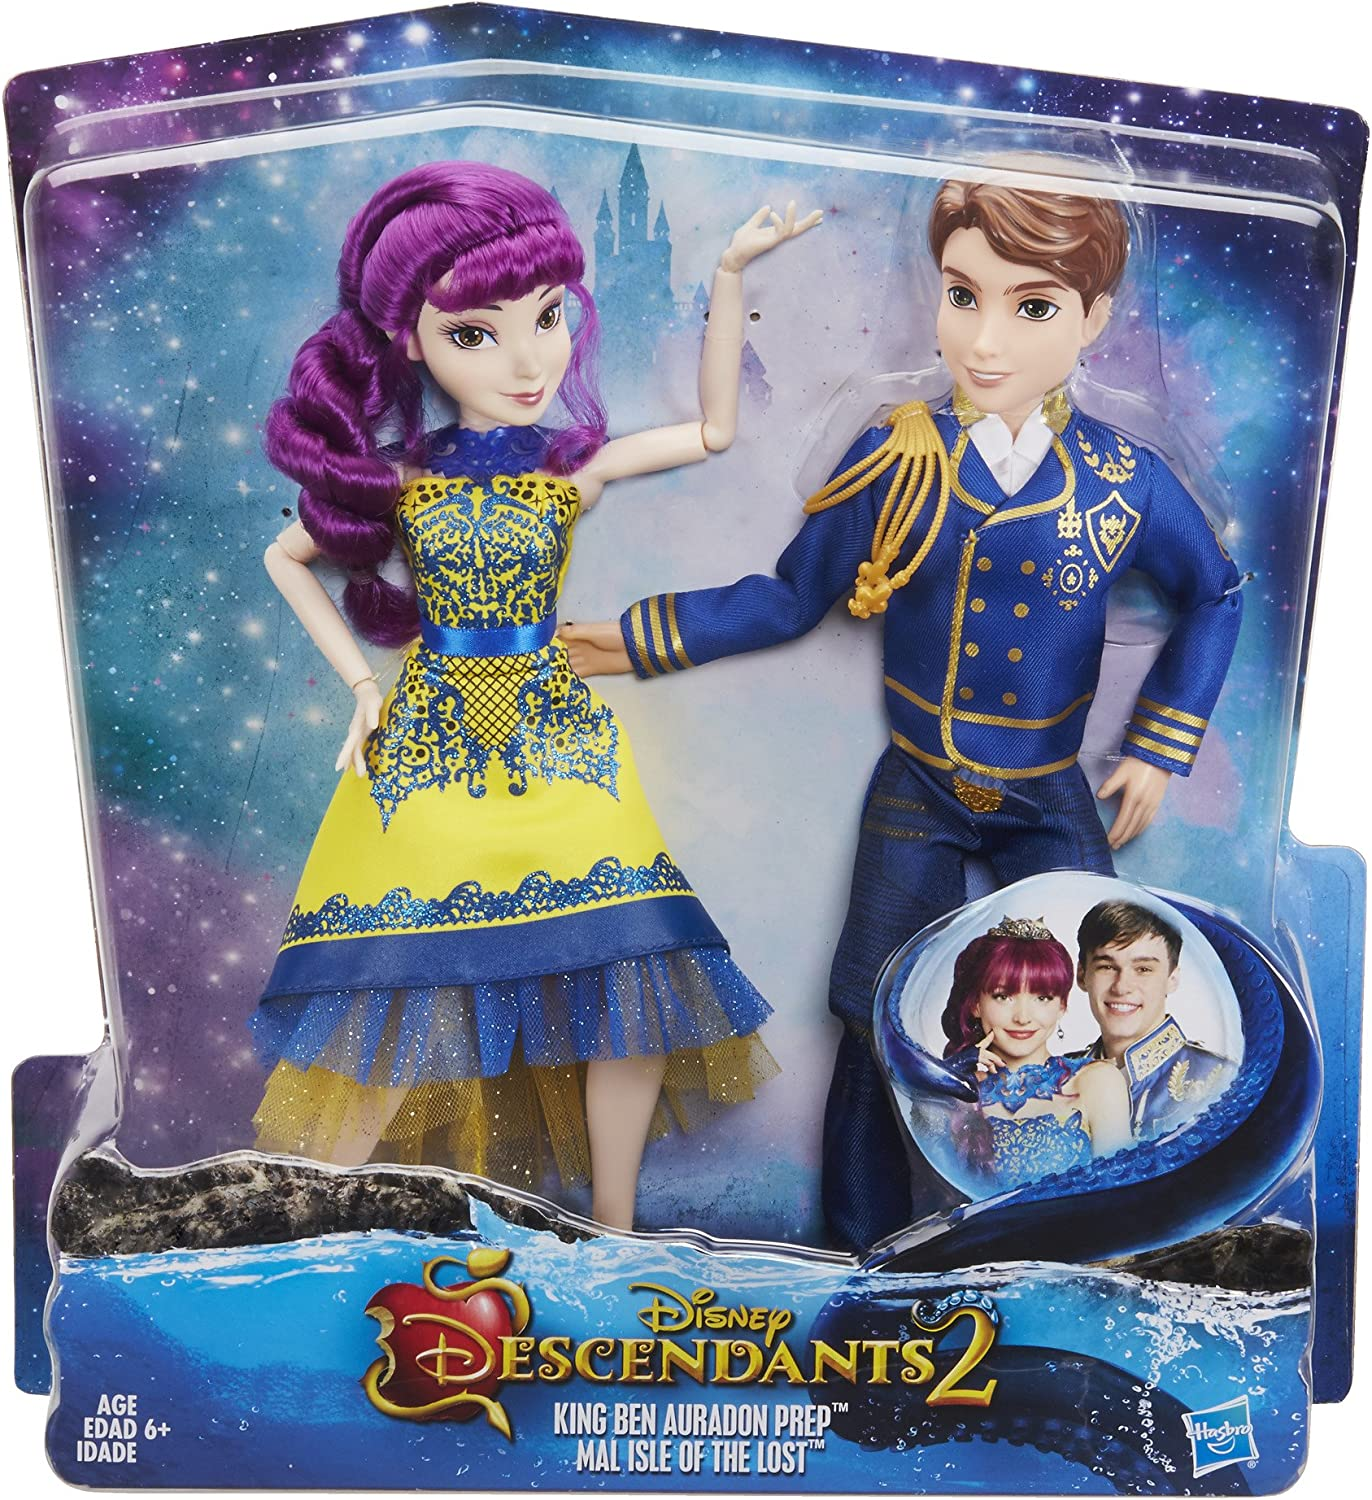 Disney Descendants Two-Pk Mal Isle of the Lost /& Ben Auradon Prep Dolls New 2014